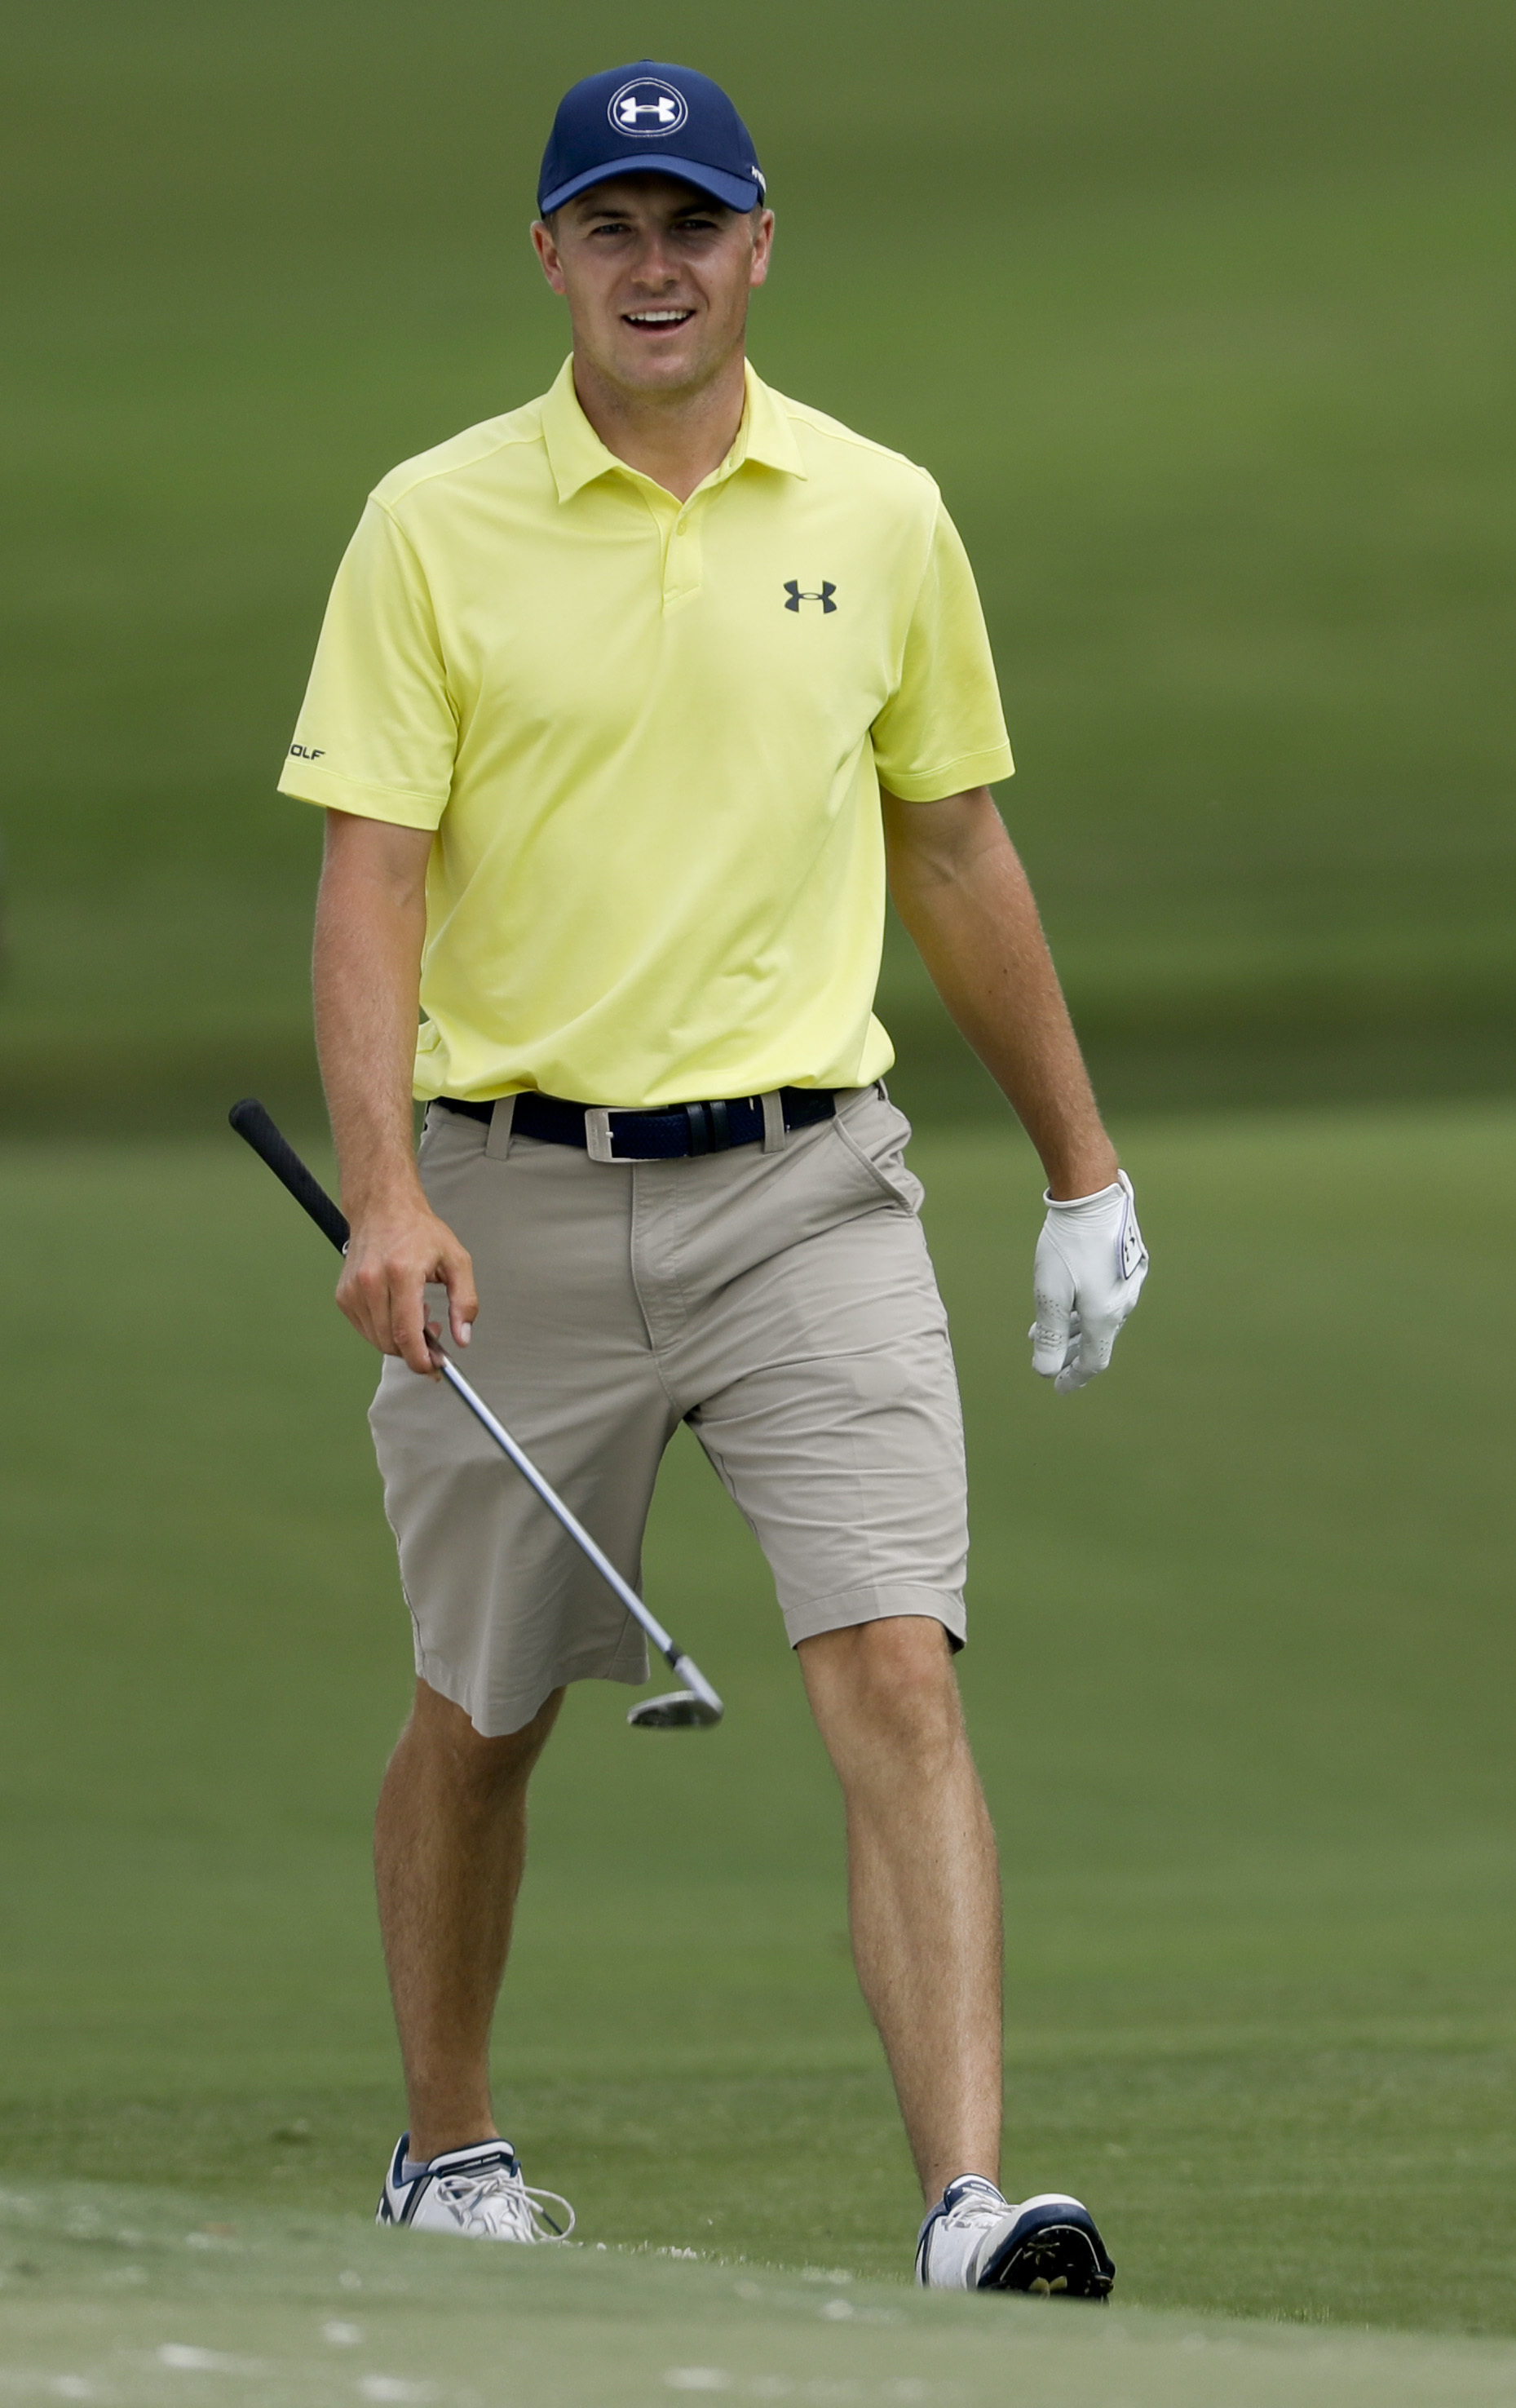 Jordan Spieth walks onto the 15th green during a practice round at the PGA Championship golf tournament at the Quail Hollow Club Tuesday, Aug. 8, 2017, in Charlotte, N.C. (AP Photo/Chris Carlson)